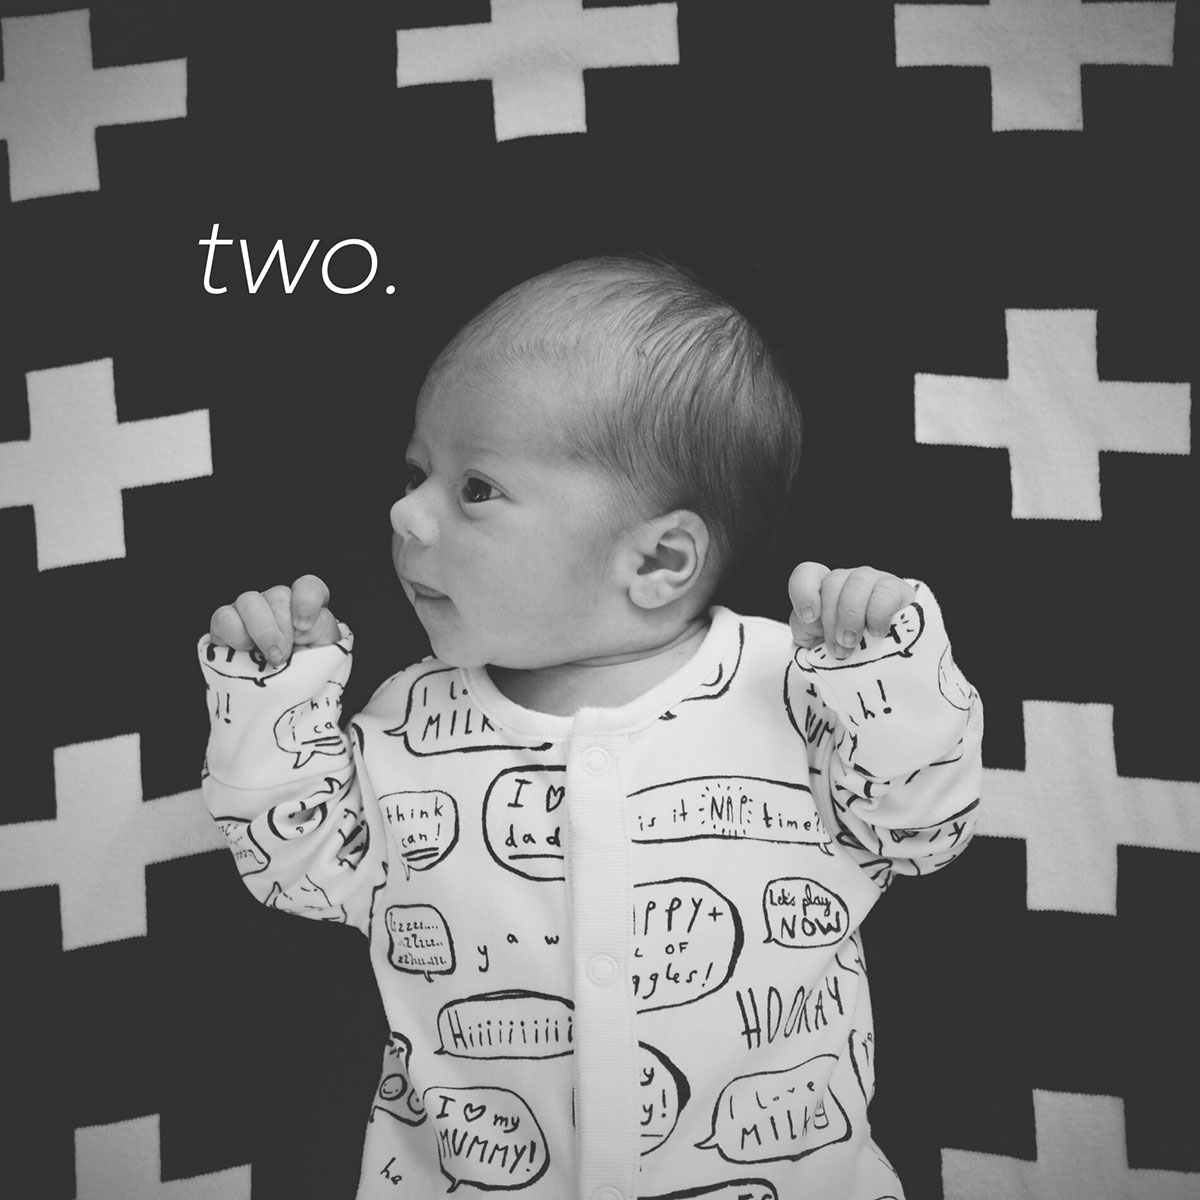 Our month in insta-snaps; August 2016 - New baby boy at two weeks old, flatlay on monochrome cross blanket